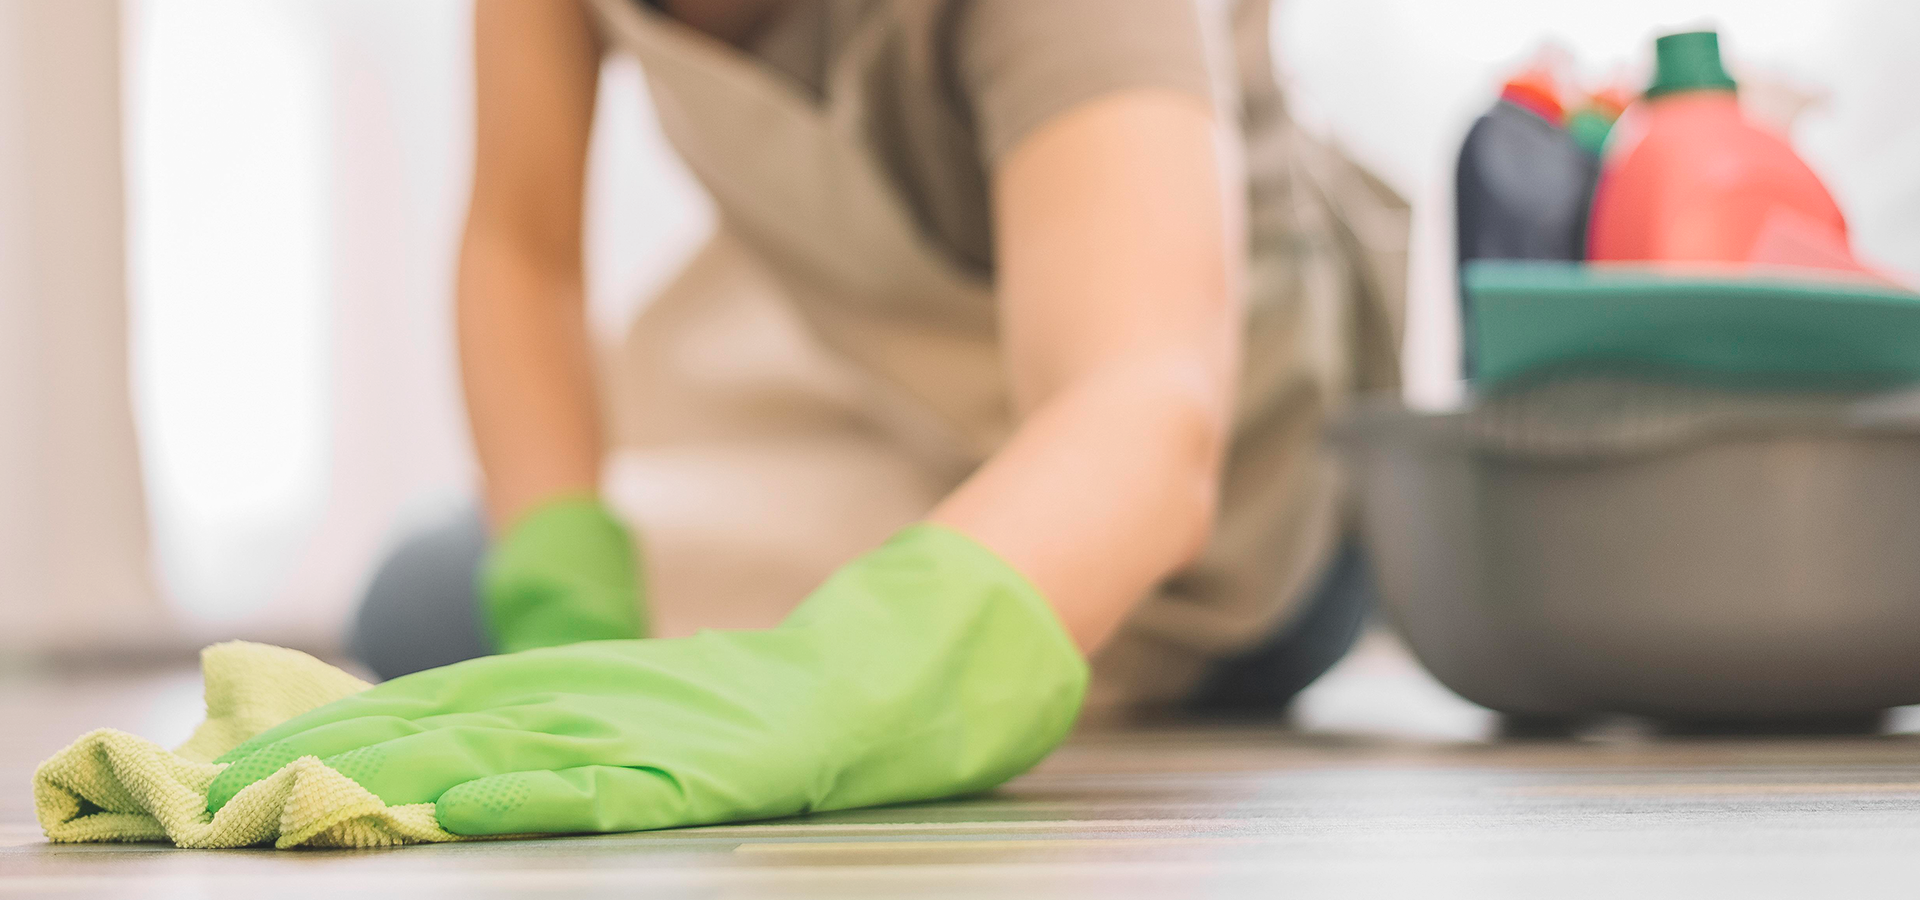 Frequently asked questions about our cleaning services